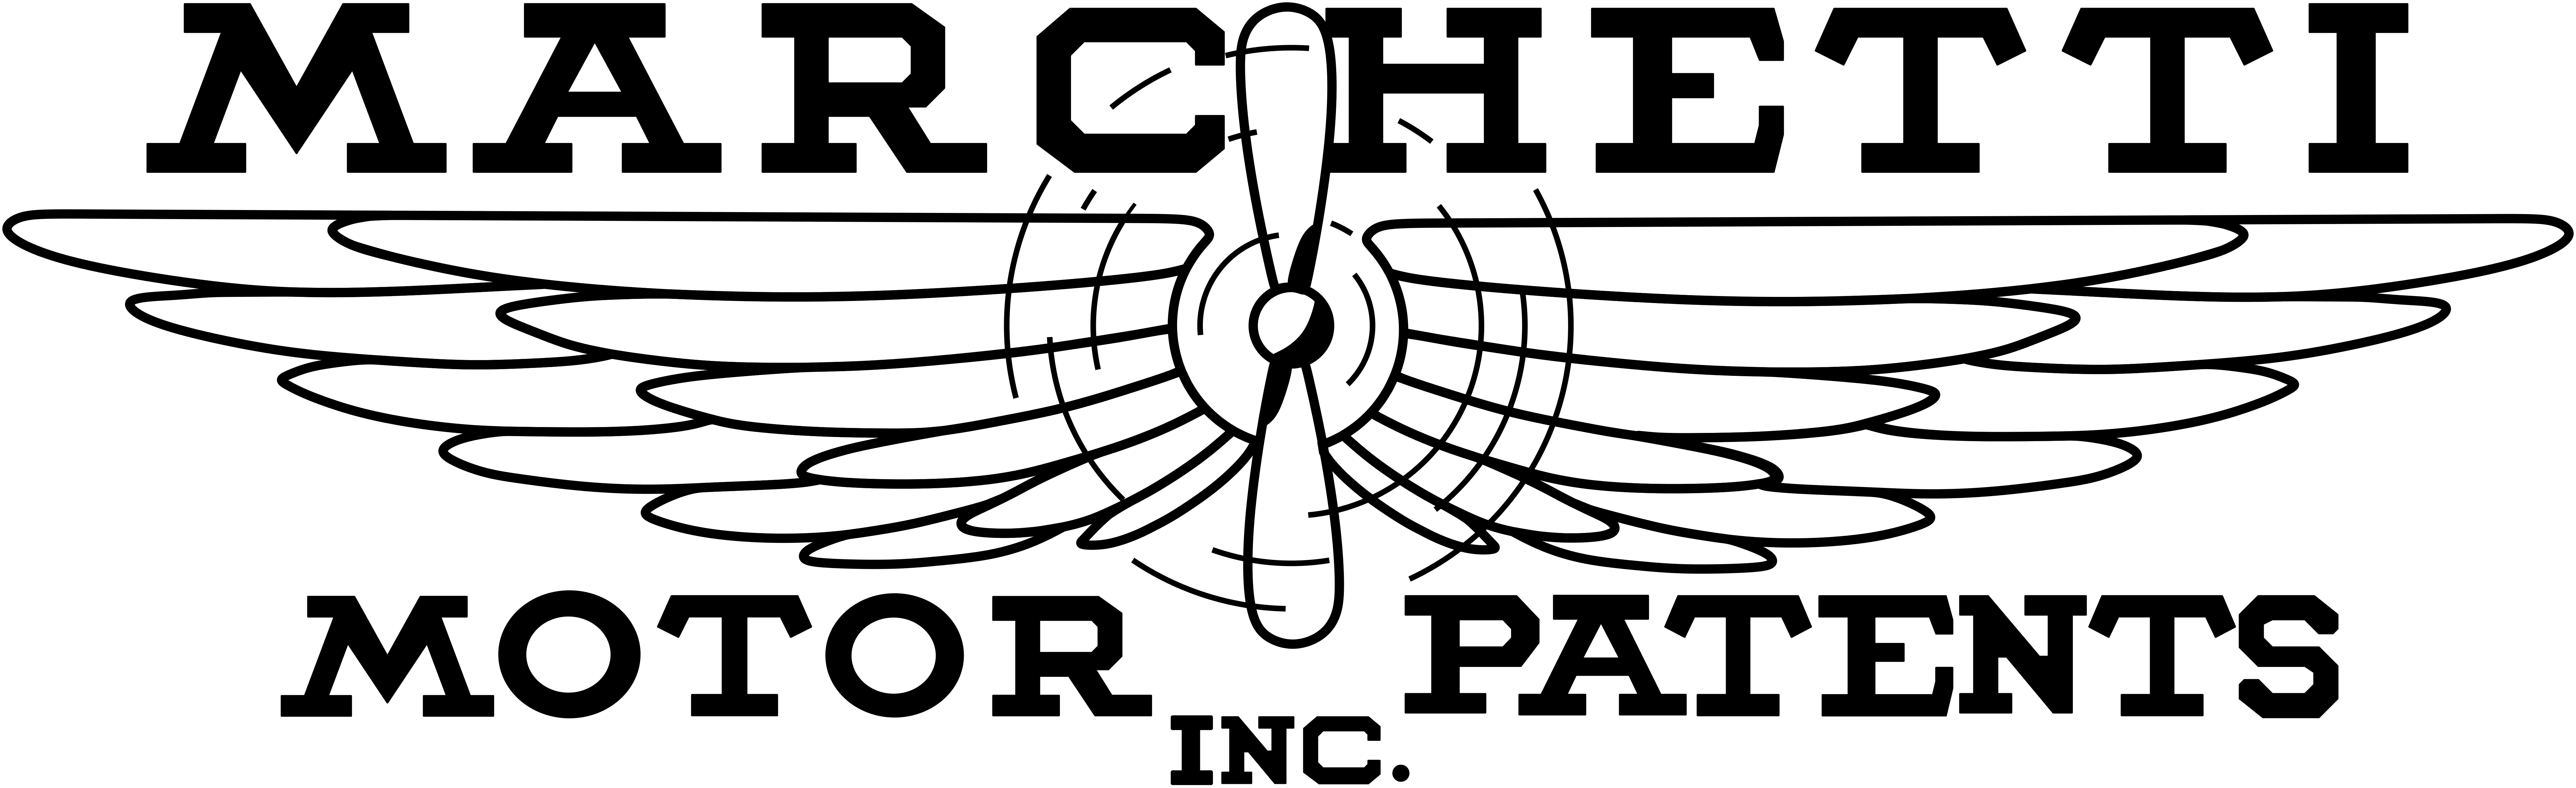 Logo of the company owned by Paul Marchetti